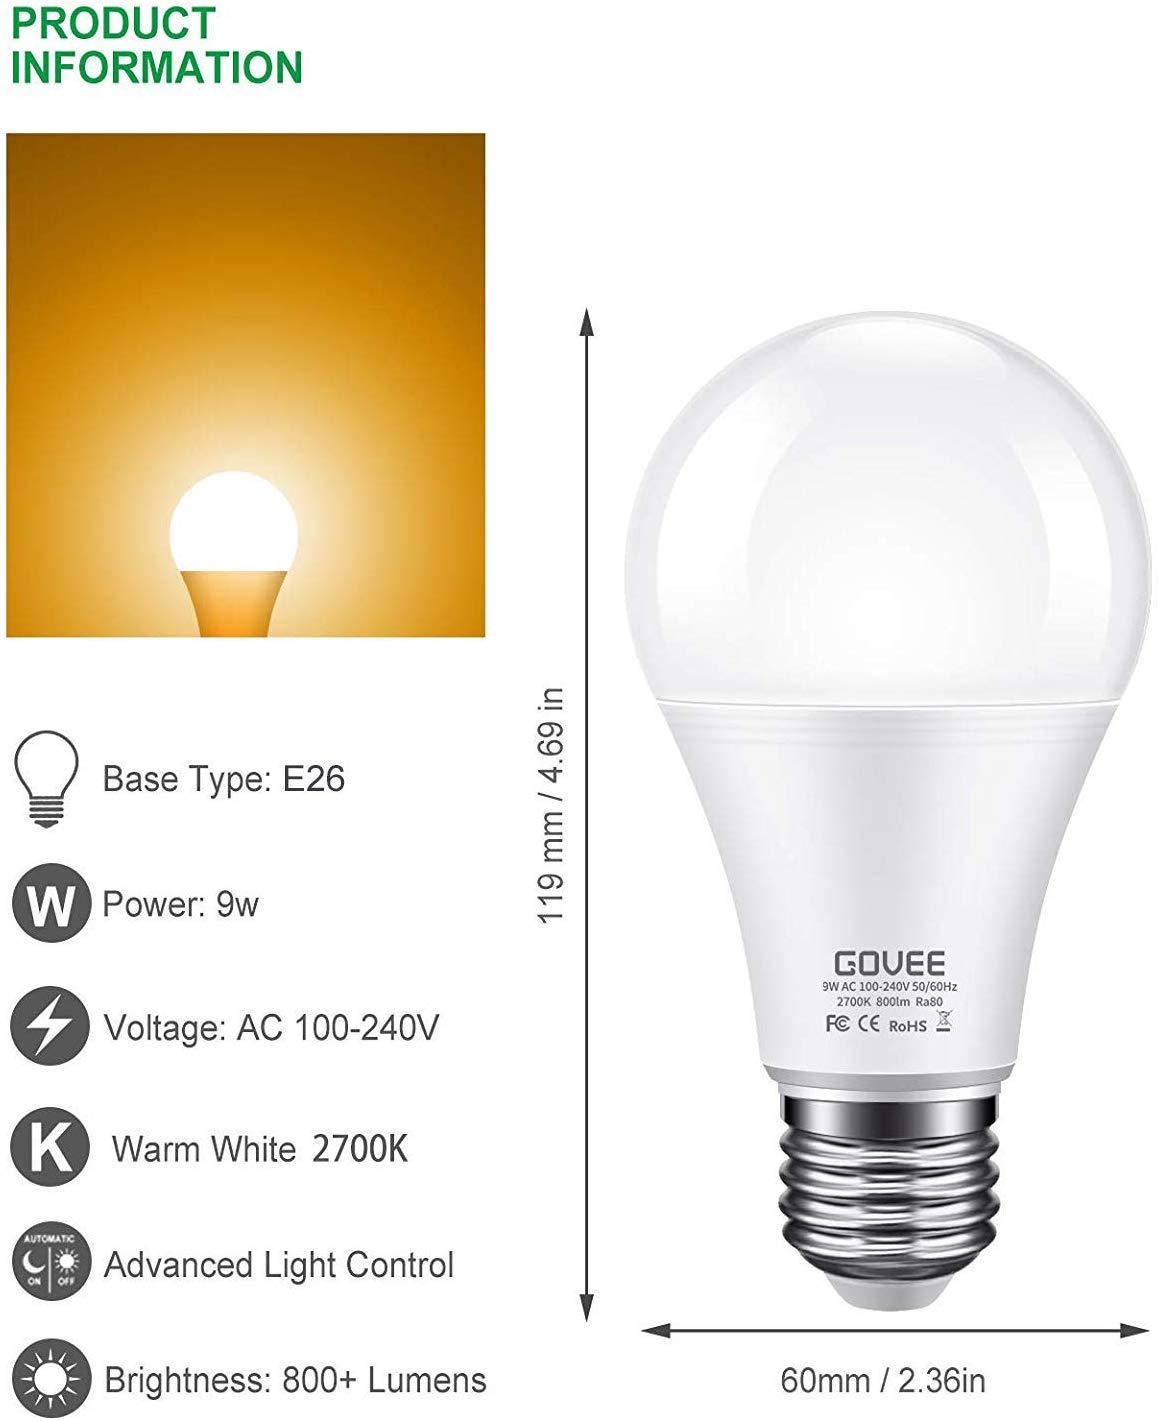 Govee Dusk To Dawn Light Bulb  9w  70 Watt Equivalent  800lm Smart Sensor Led Light Bulb  E26